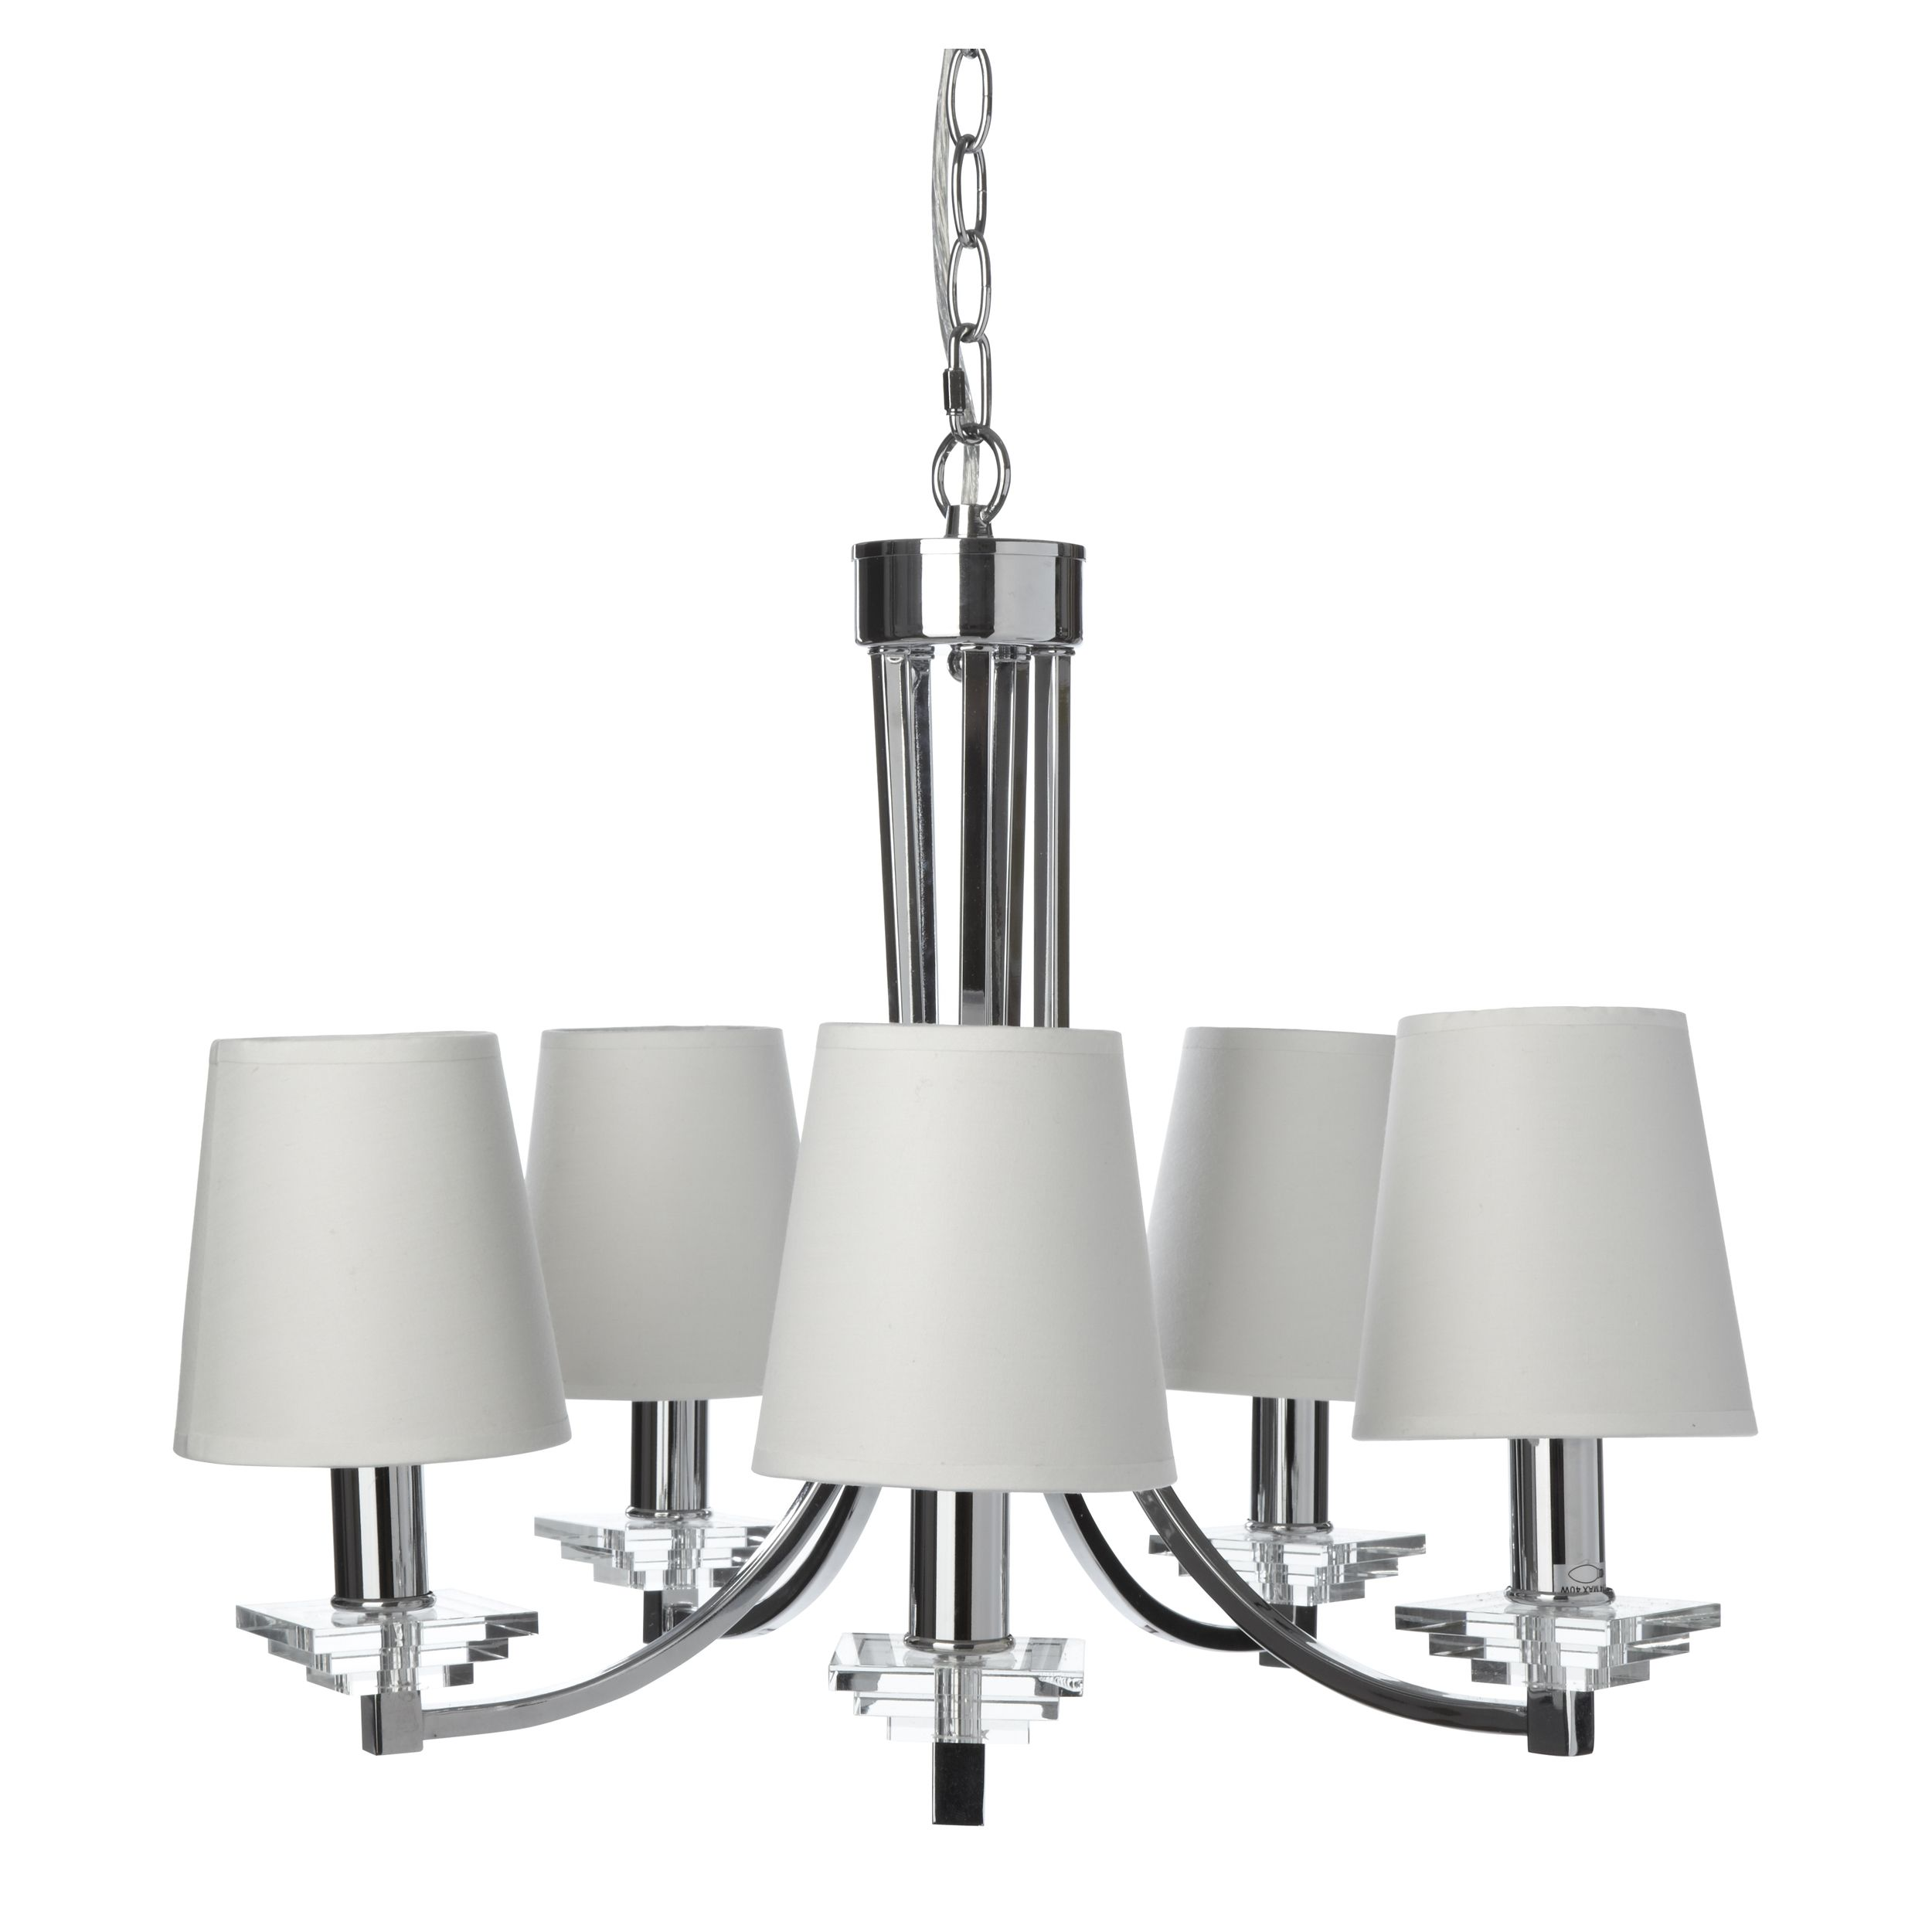 Find new ways to brighten up your home with the latest collection of  ceiling lights and chandeliers at Laura AshleyAldwych 5 Light Chandelier   Lamps   Pinterest   Laura ashley  . Ashley Lighting. Home Design Ideas